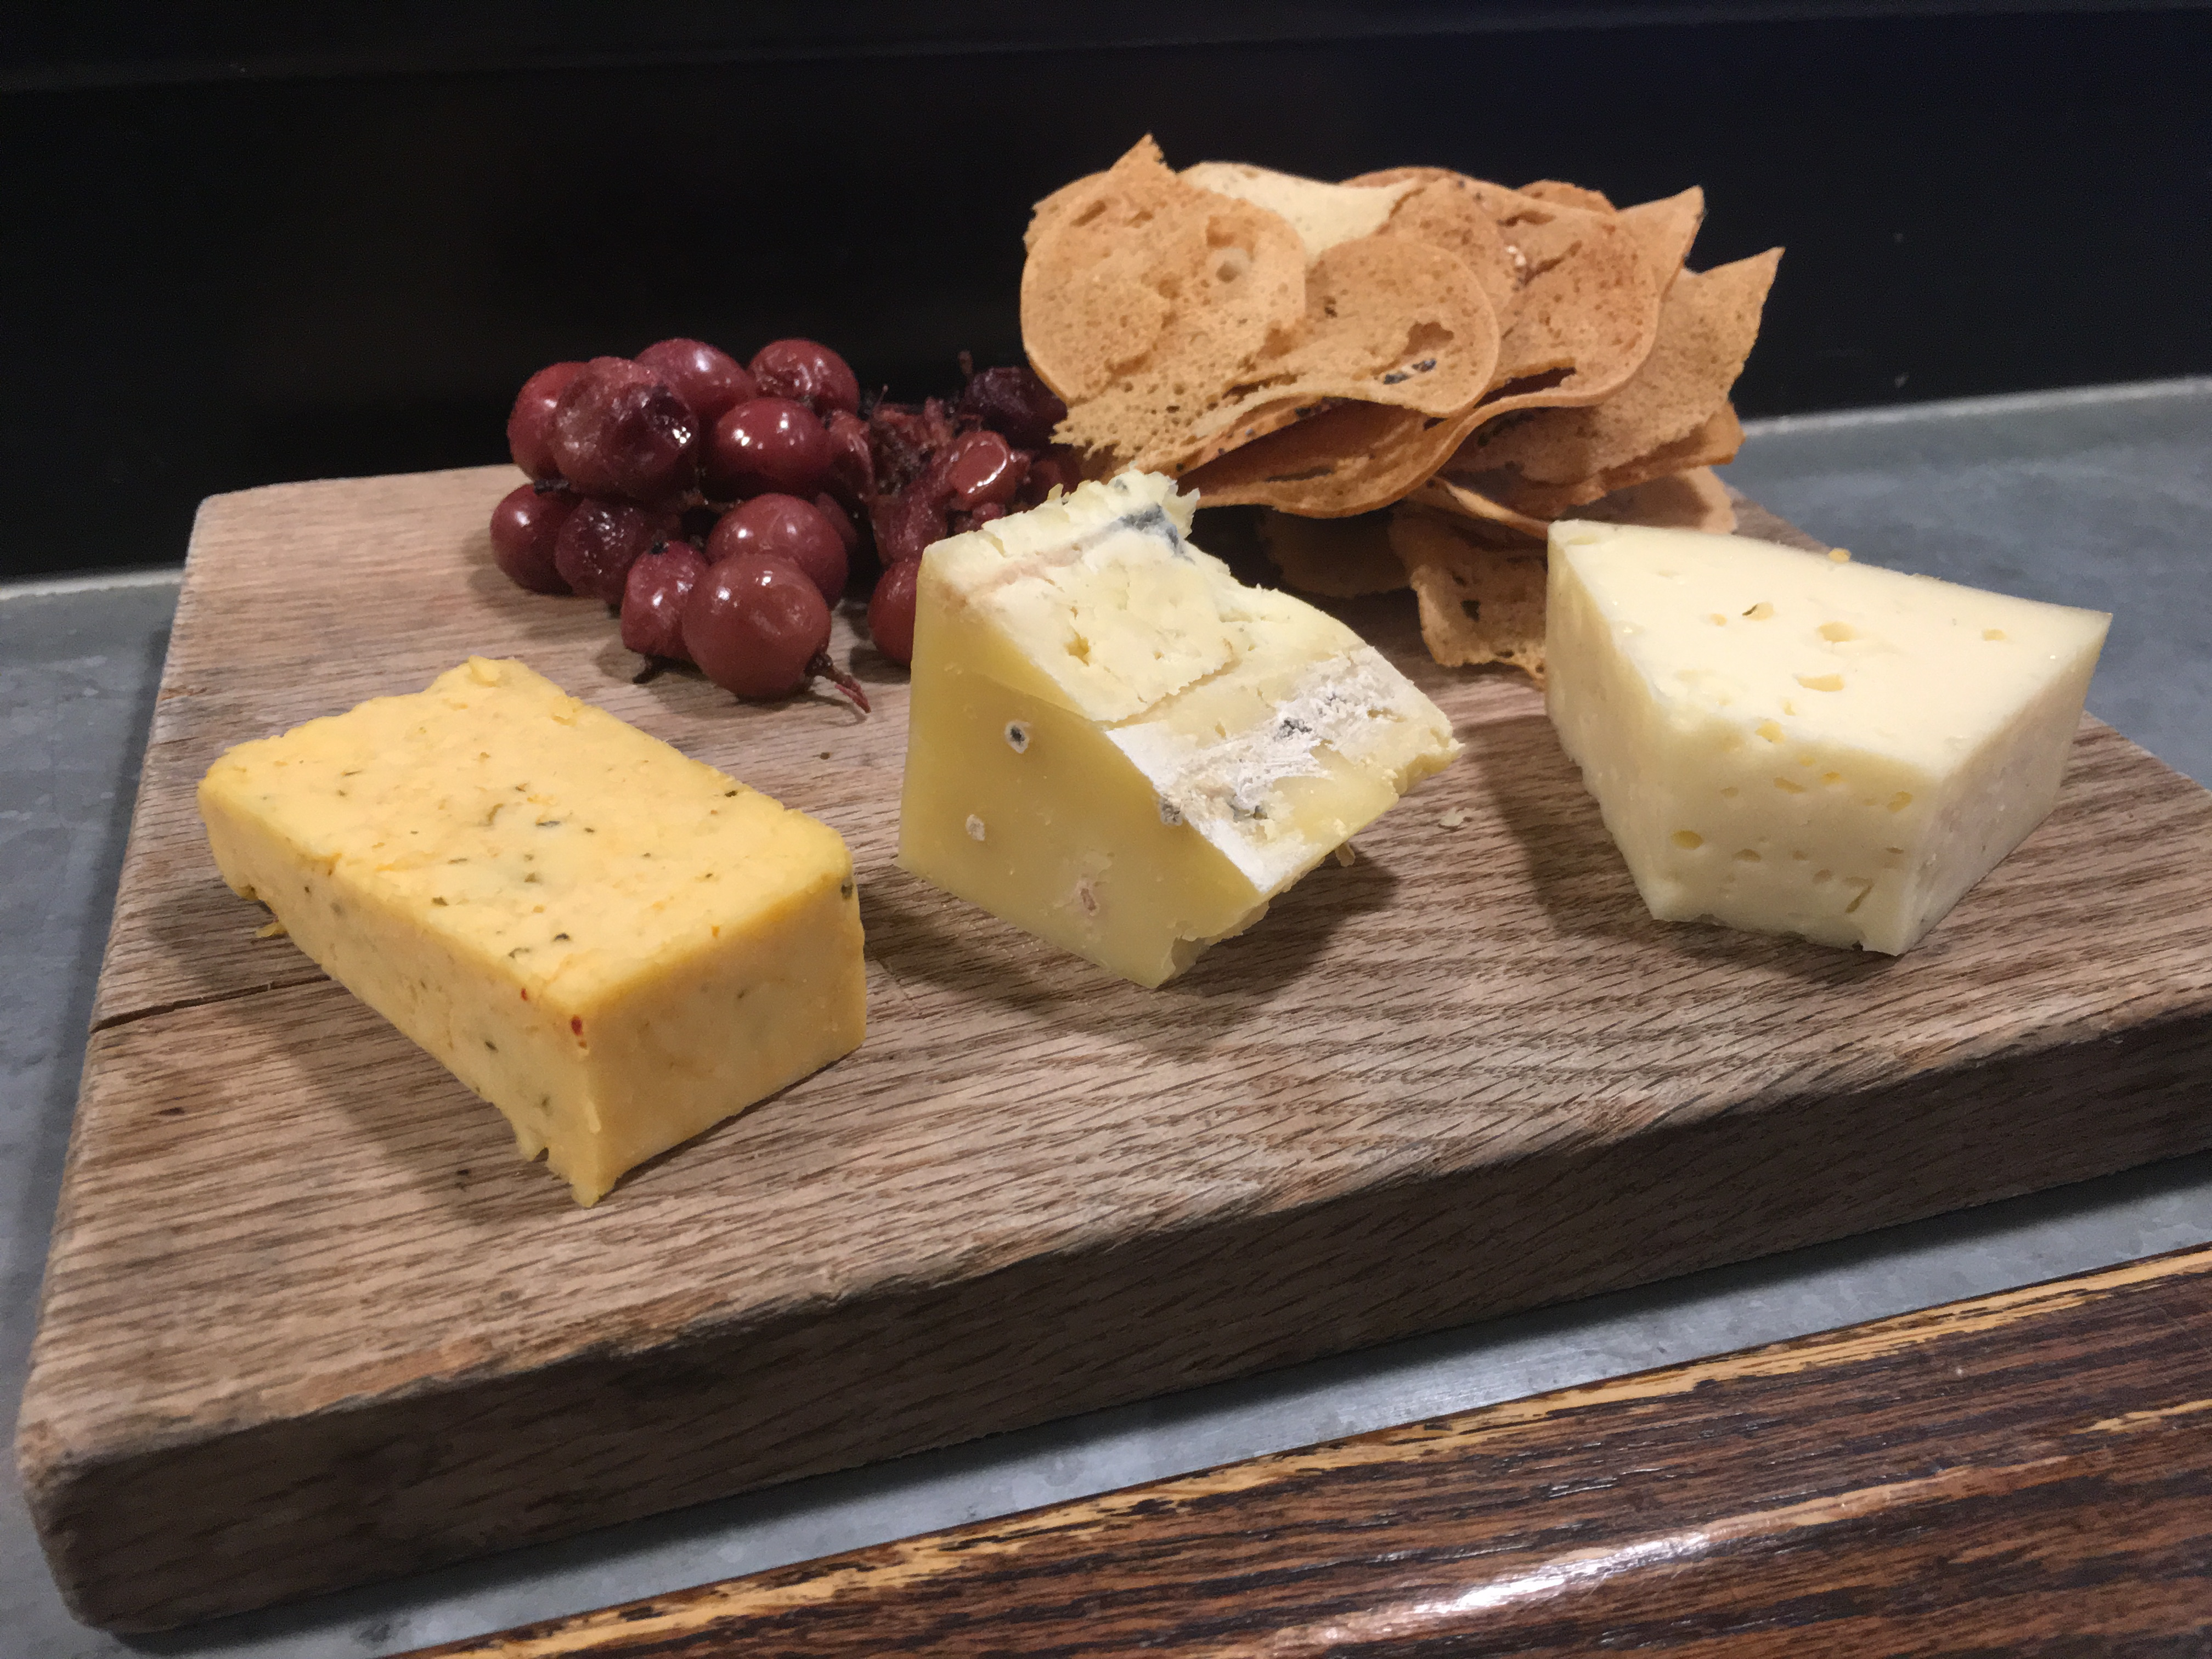 Kenny's Farmhouse: Where Sweet Dreams are Made of Cheese